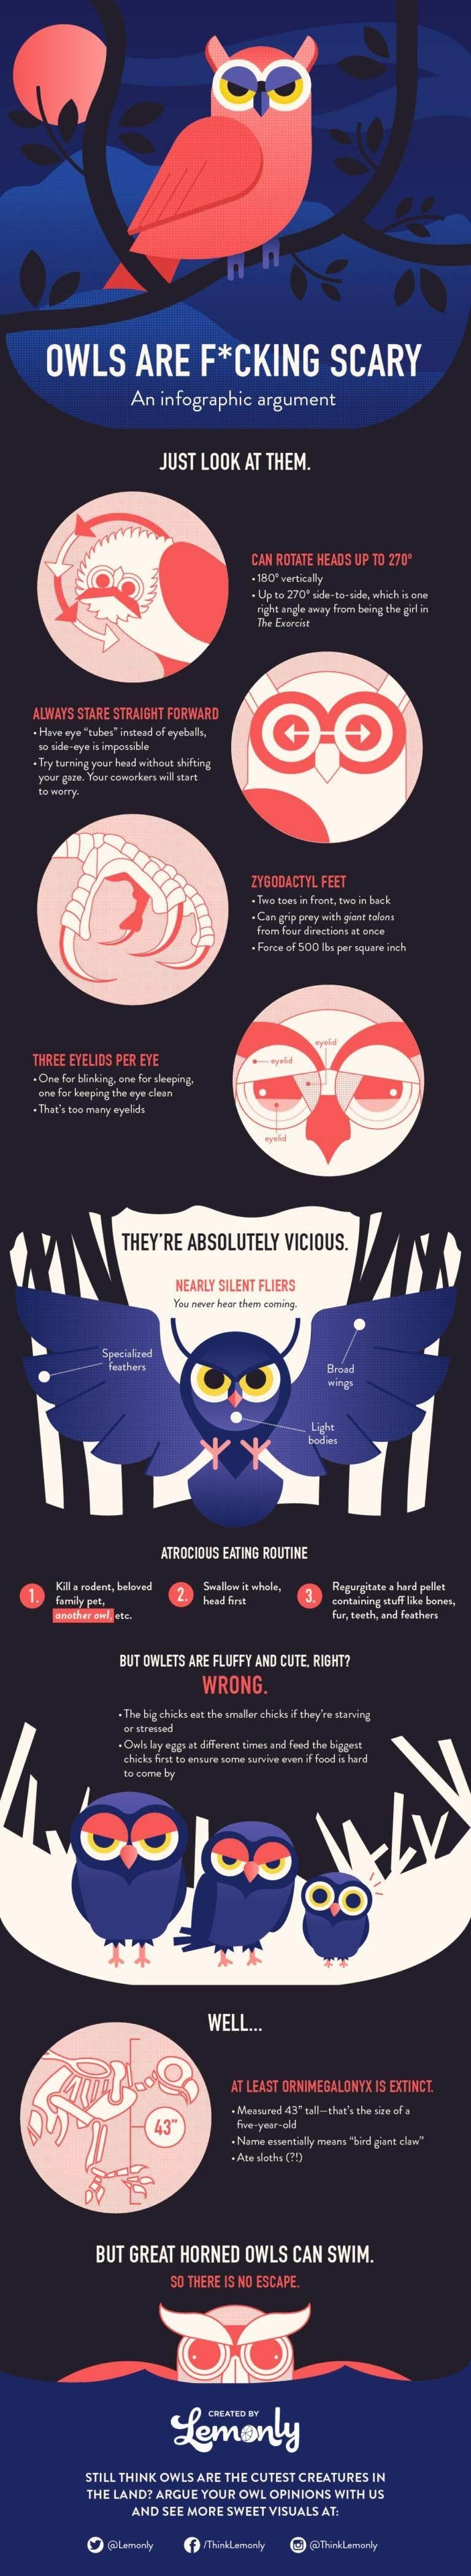 OWLS are scary an argument #infographic